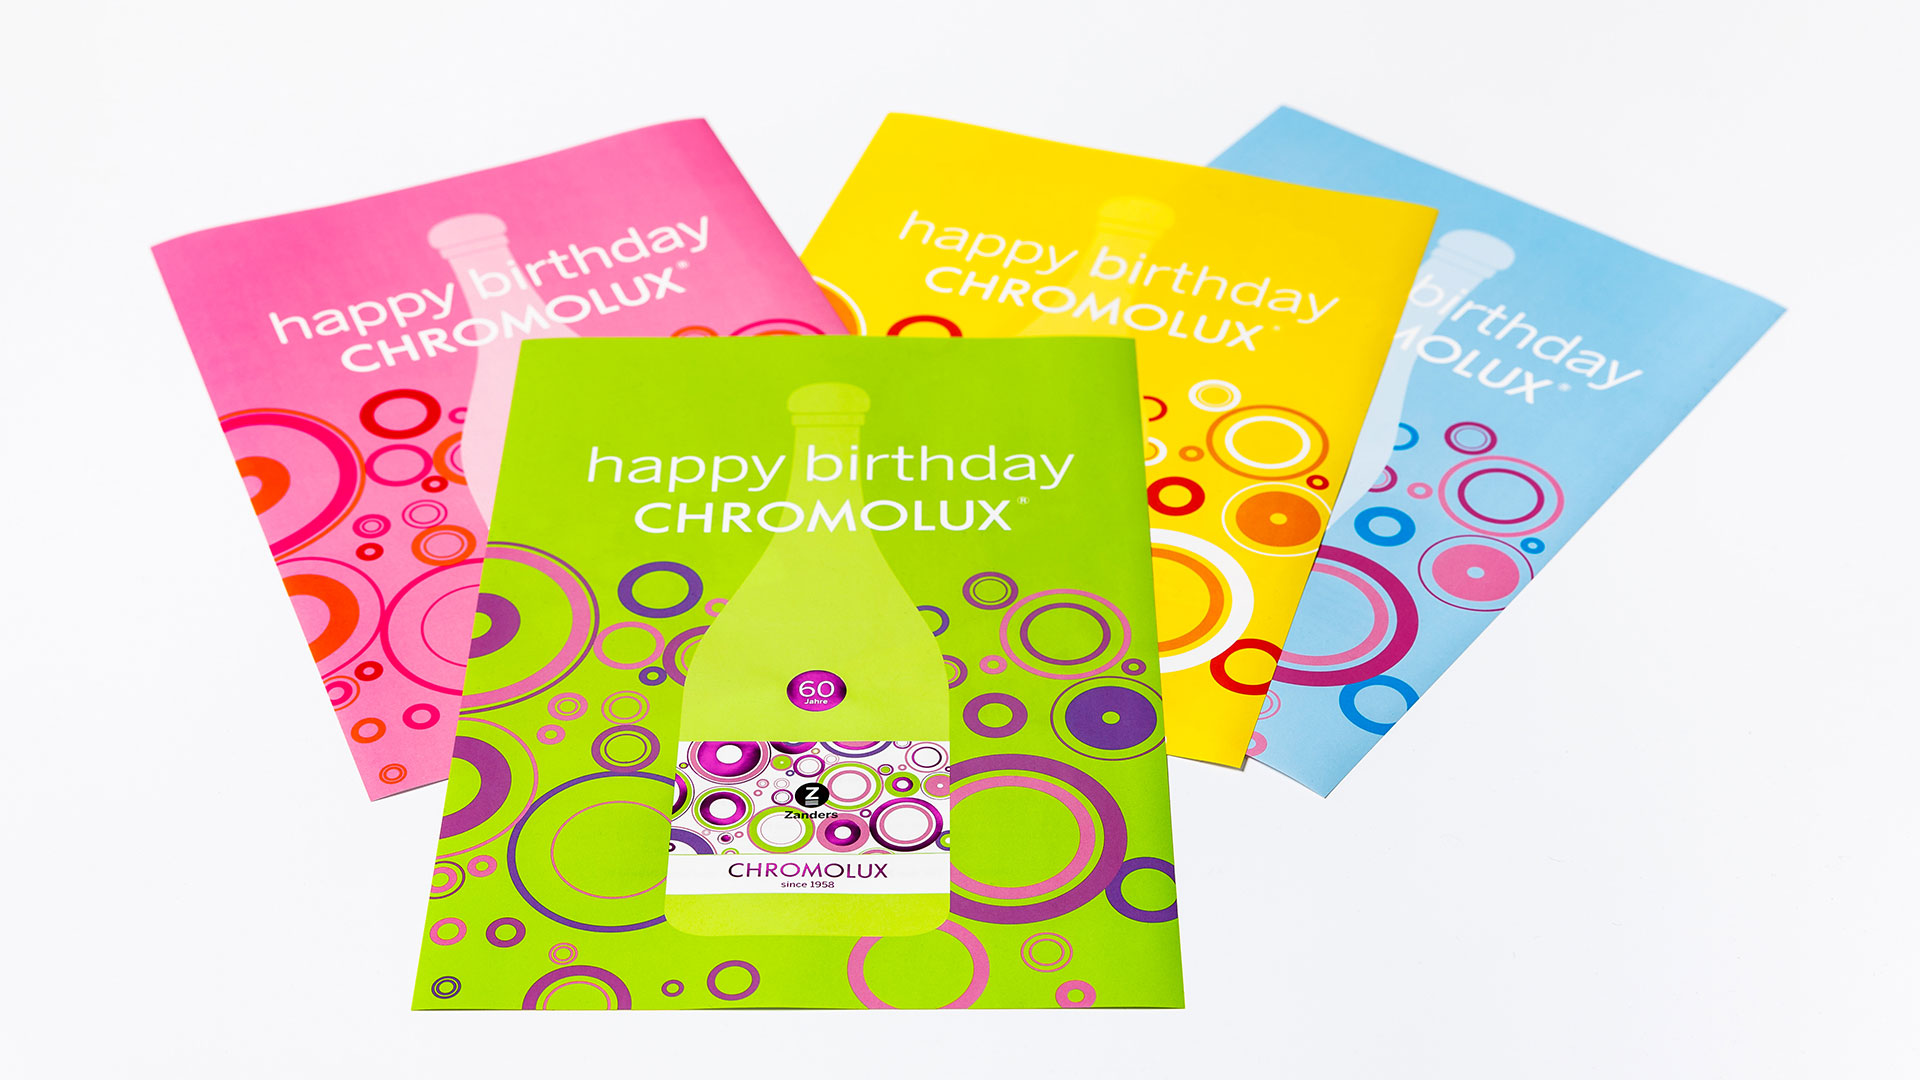 Chromolux: Making Your Design Shine for 60 Years